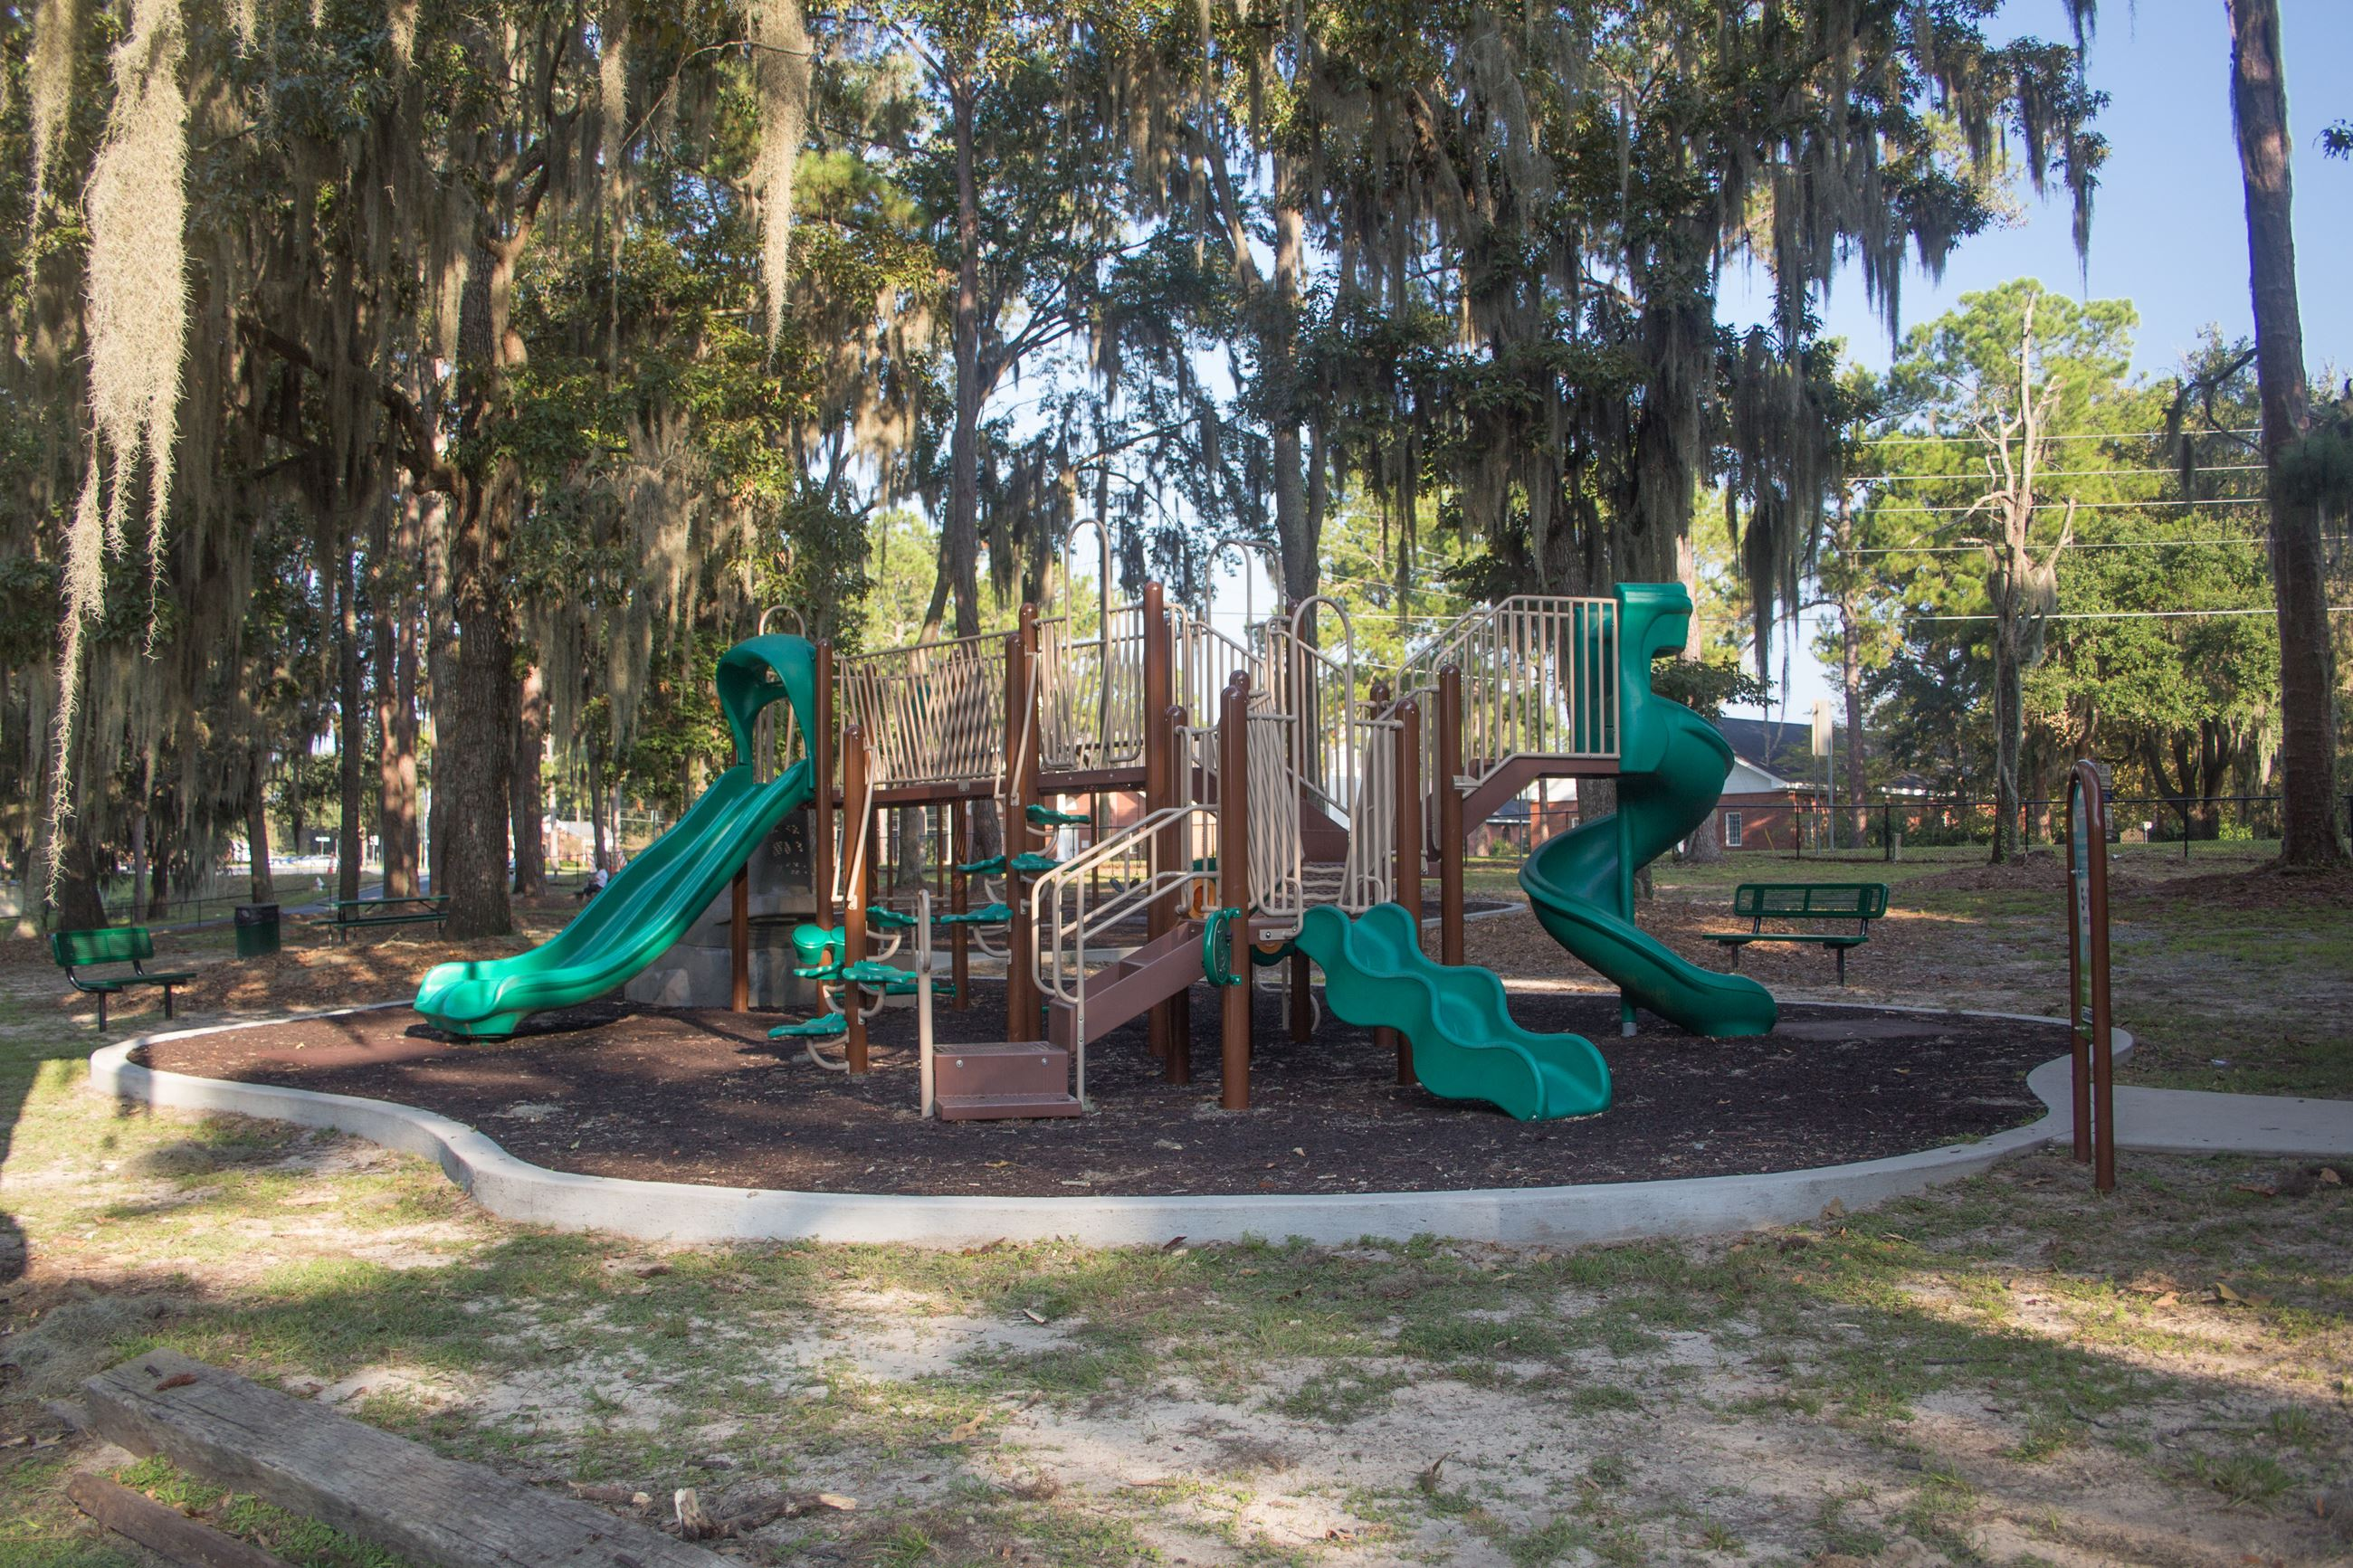 An image of a playground at a park.